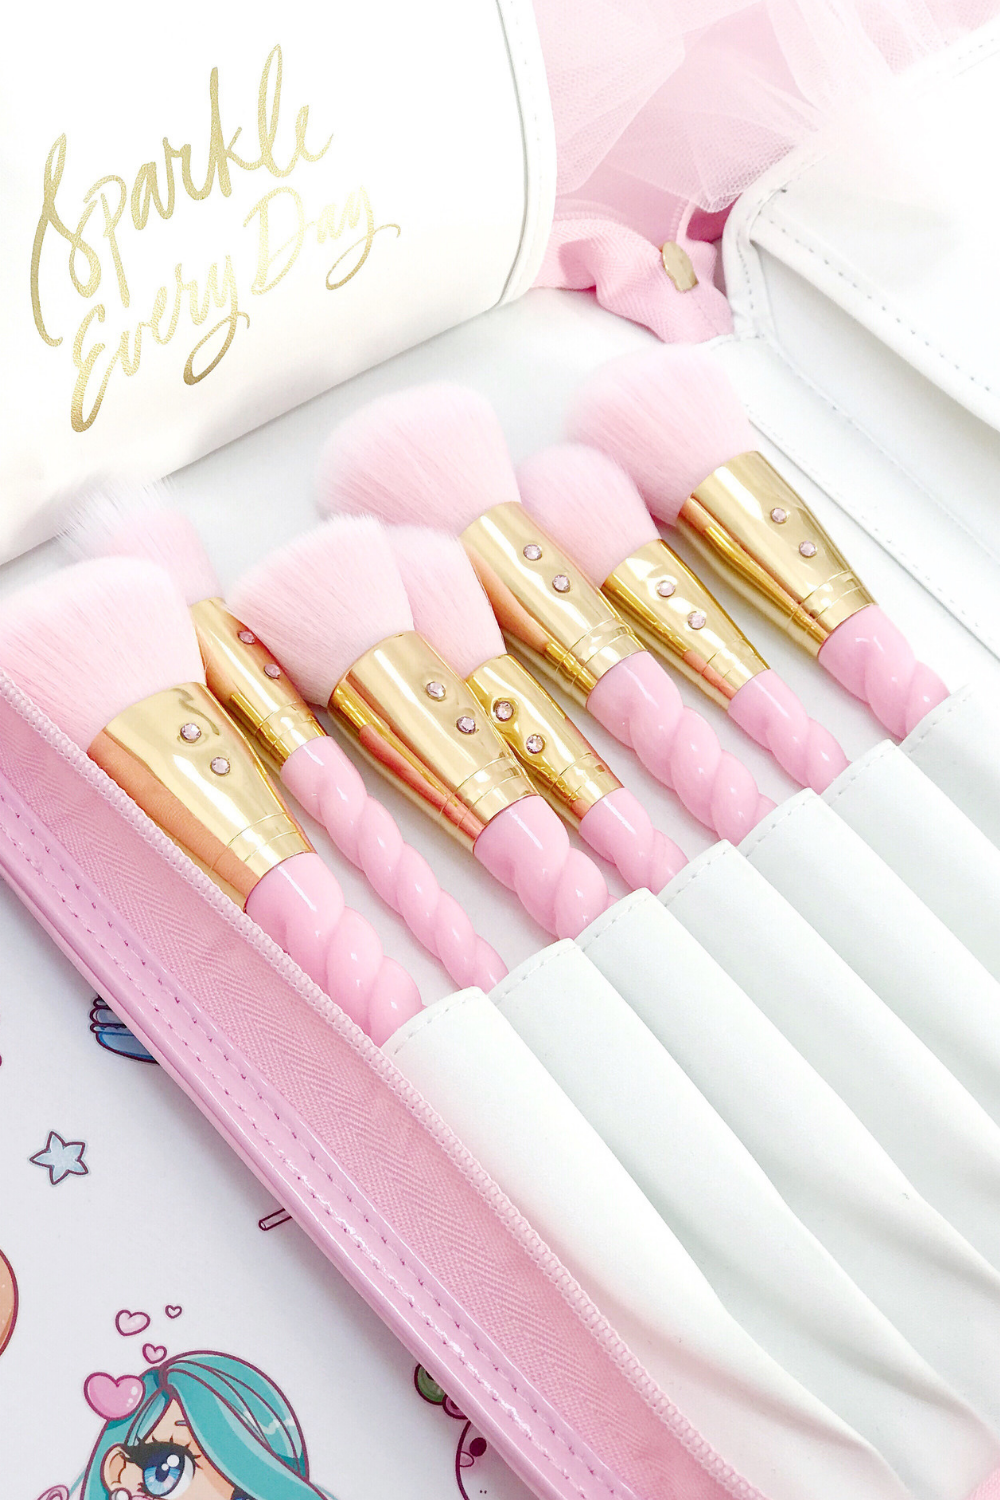 Think Pink & Sparkle Everyday: New Pink Princess Glam Brush Book